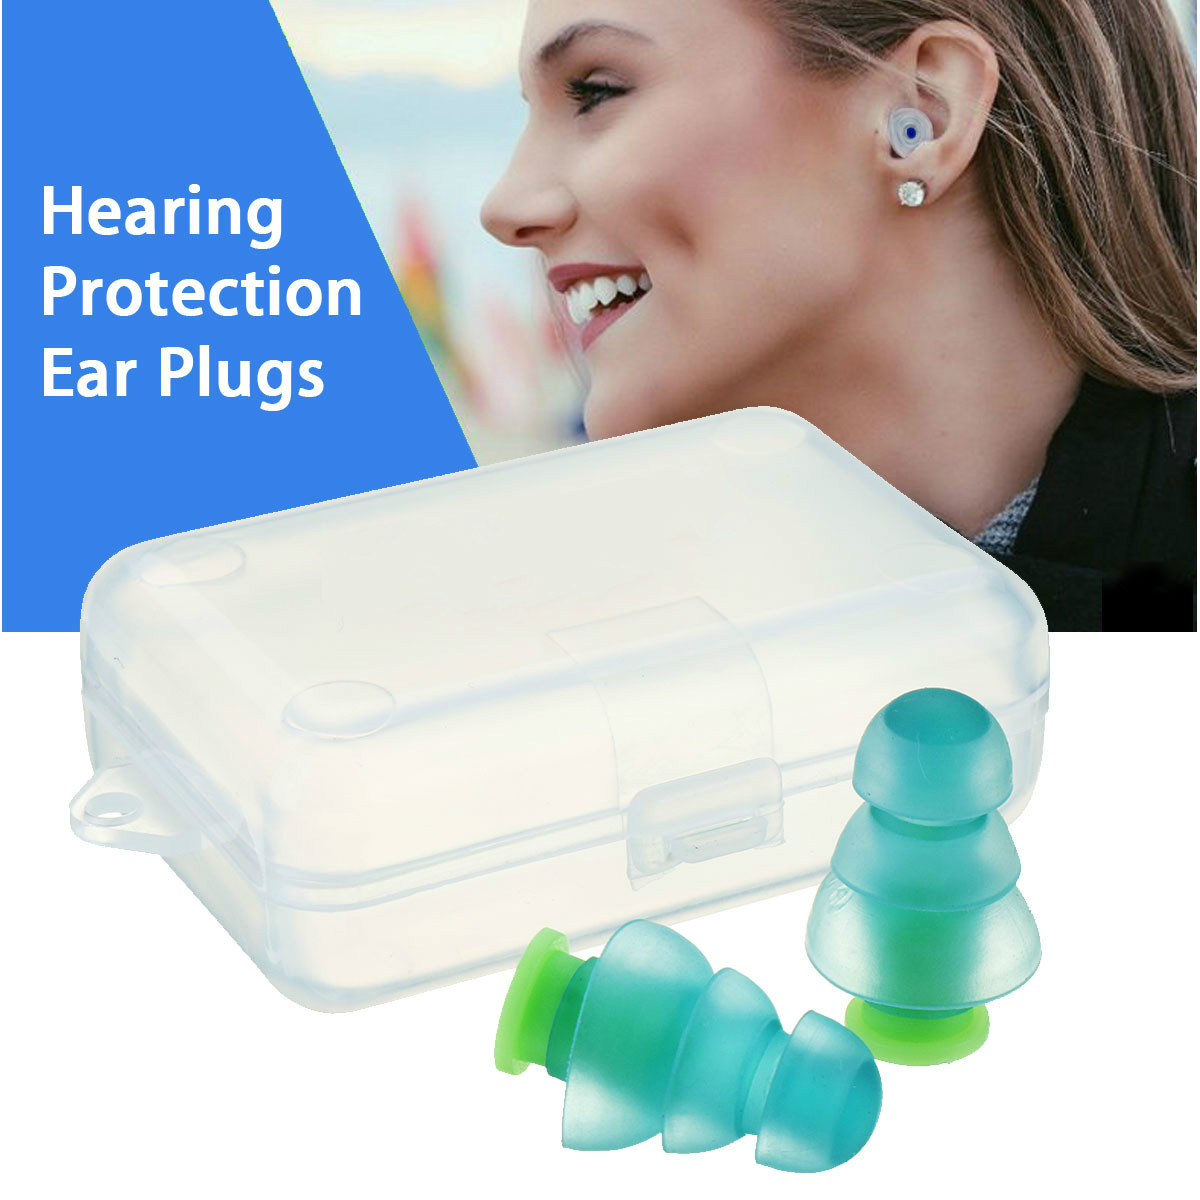 Hearing Protection Earplugs For Concerts Musician Motorcycles Reusable Silicone Ear Plugs Safurance 1 Pair Noise Cancelling